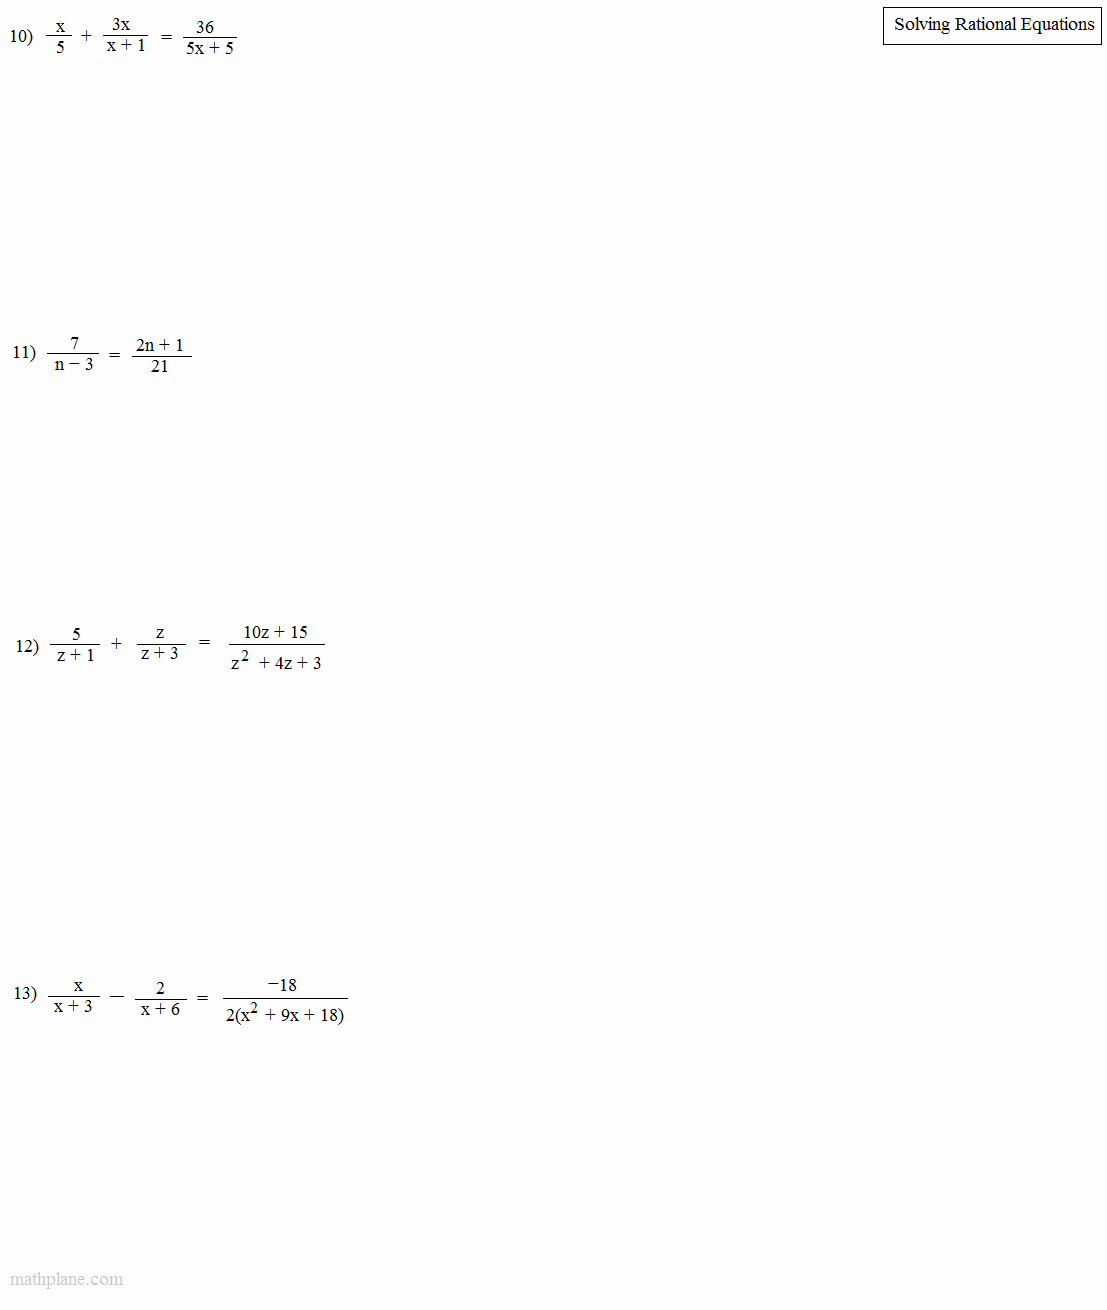 Solving Rational Inequalities Worksheet Lovely Math Plane solving Rational Equations